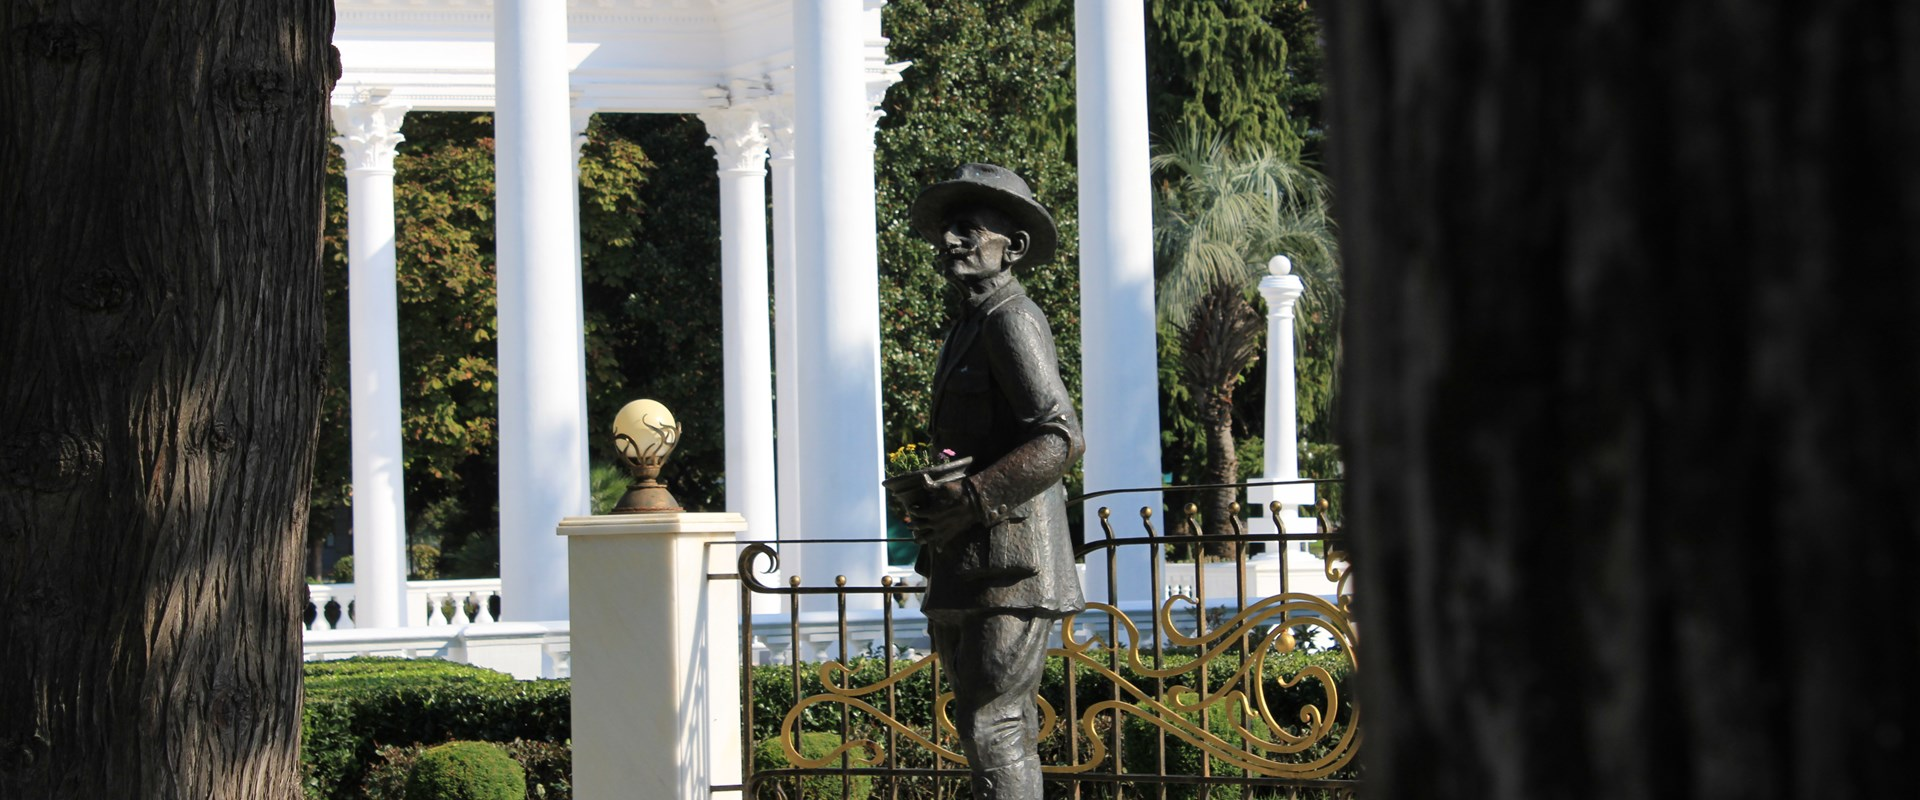 A sculpture of Iason Gordeziani, the main gardener and decorator of the boulevard <br />